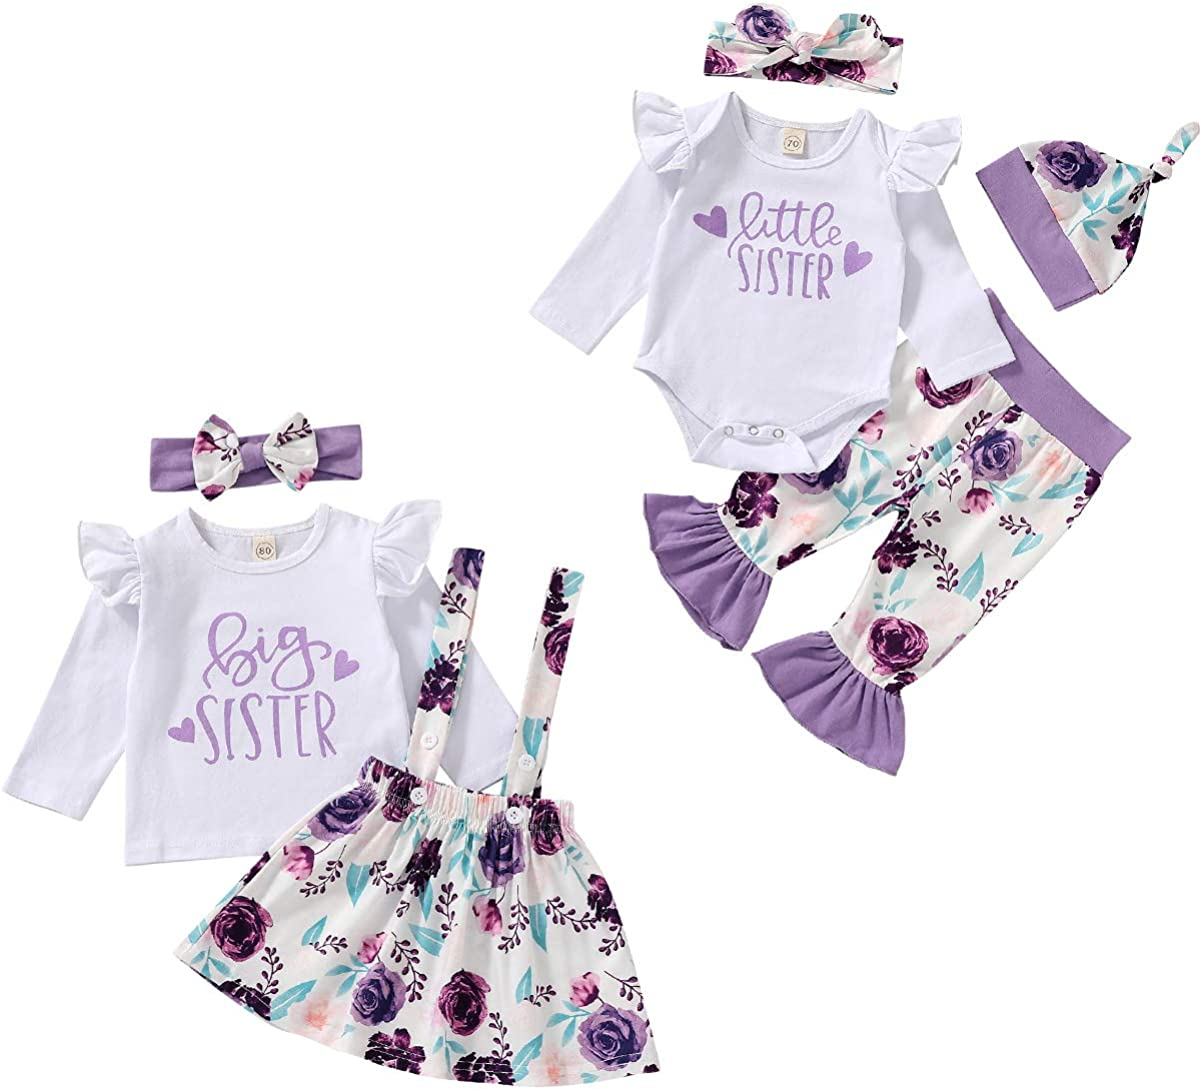 Toddler Baby Girls Sister Matching Outfits Baby Little Sister Romper Big Sister Tops + Floral Skirt Clothes Set